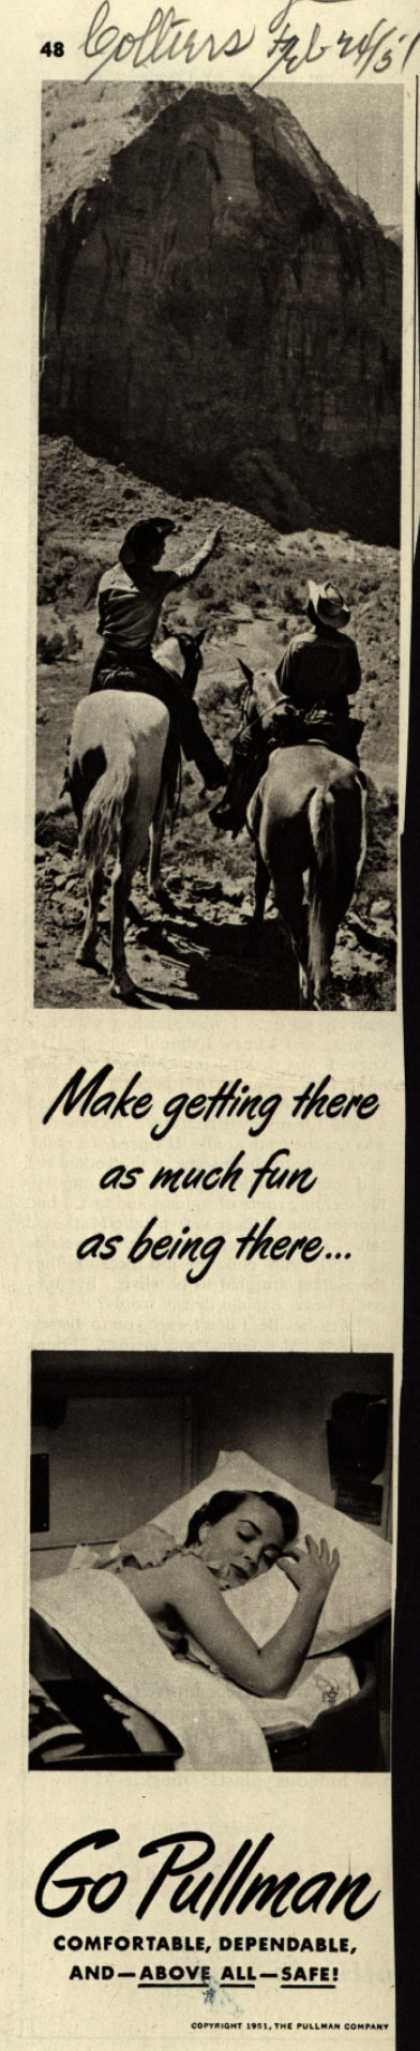 Pullman Company – Make getting there as much fun as being there... Go Pullman (1951)